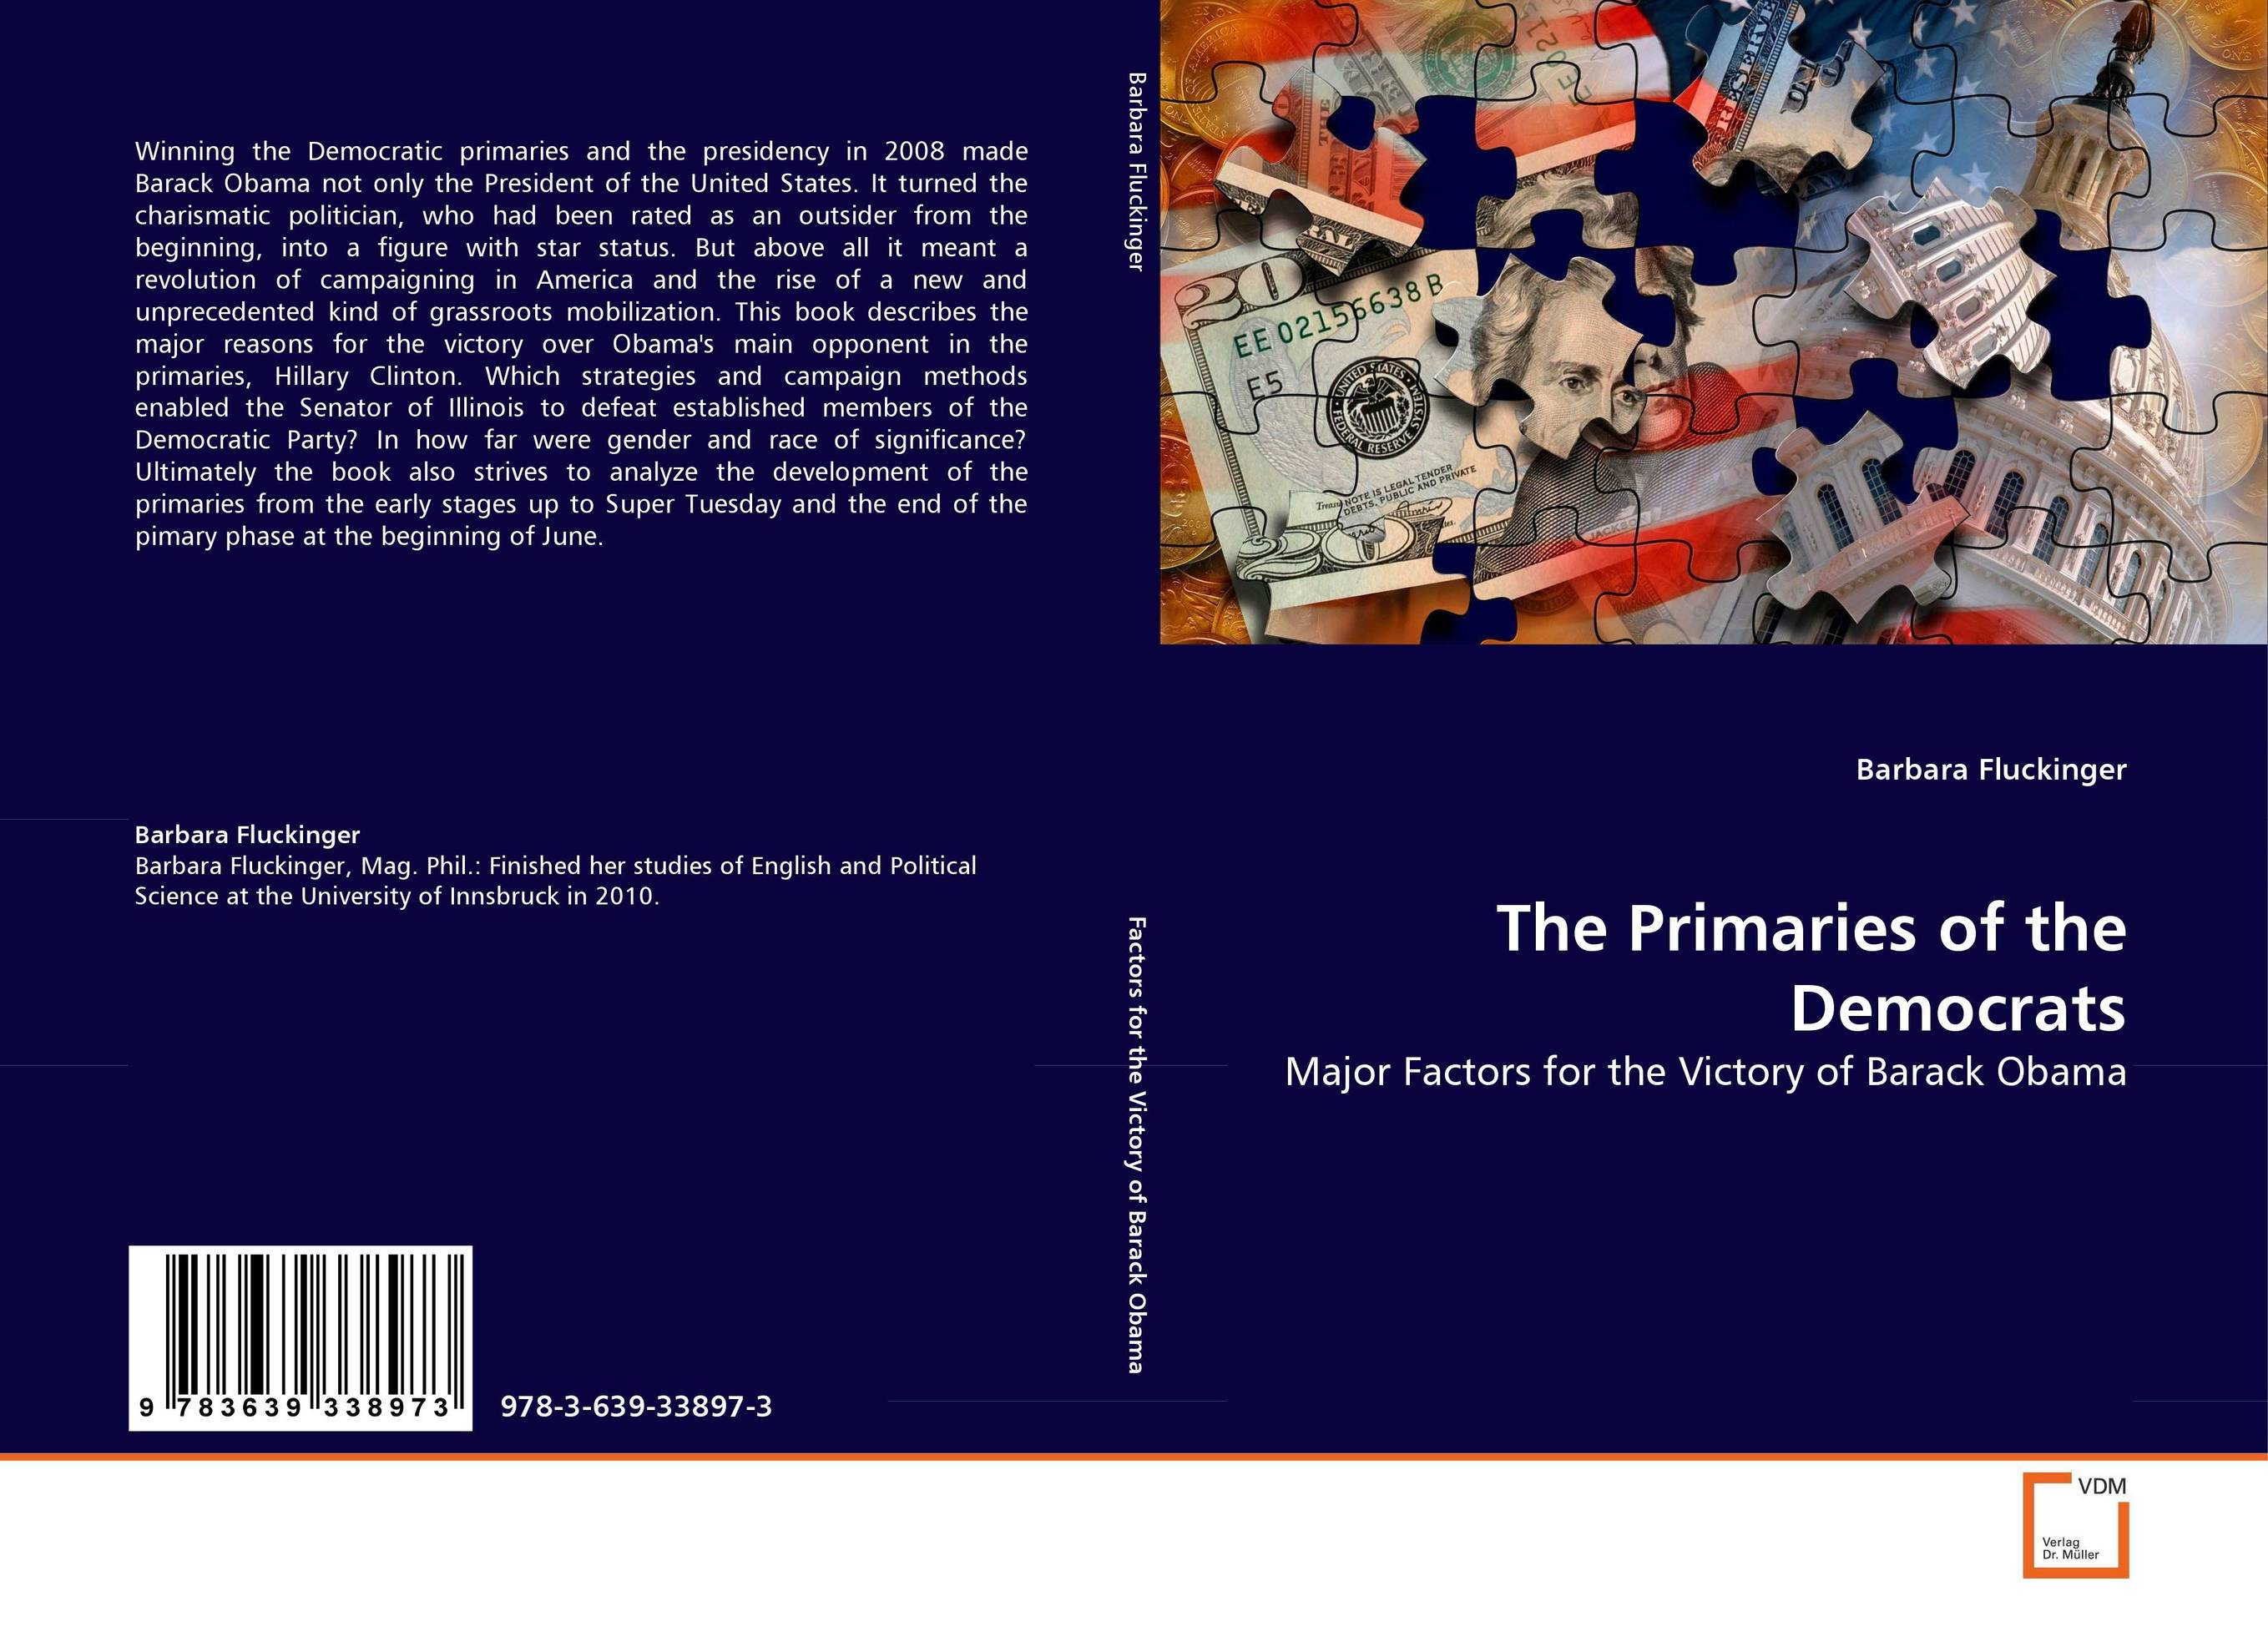 the democracy new developments New developments in deliberative democracy blaug,  if the new deliberative theories are to move beyond a critique of liberal democracy in order to articulate a legitimate and practical politics, the respective gains of these three types must be brought together.